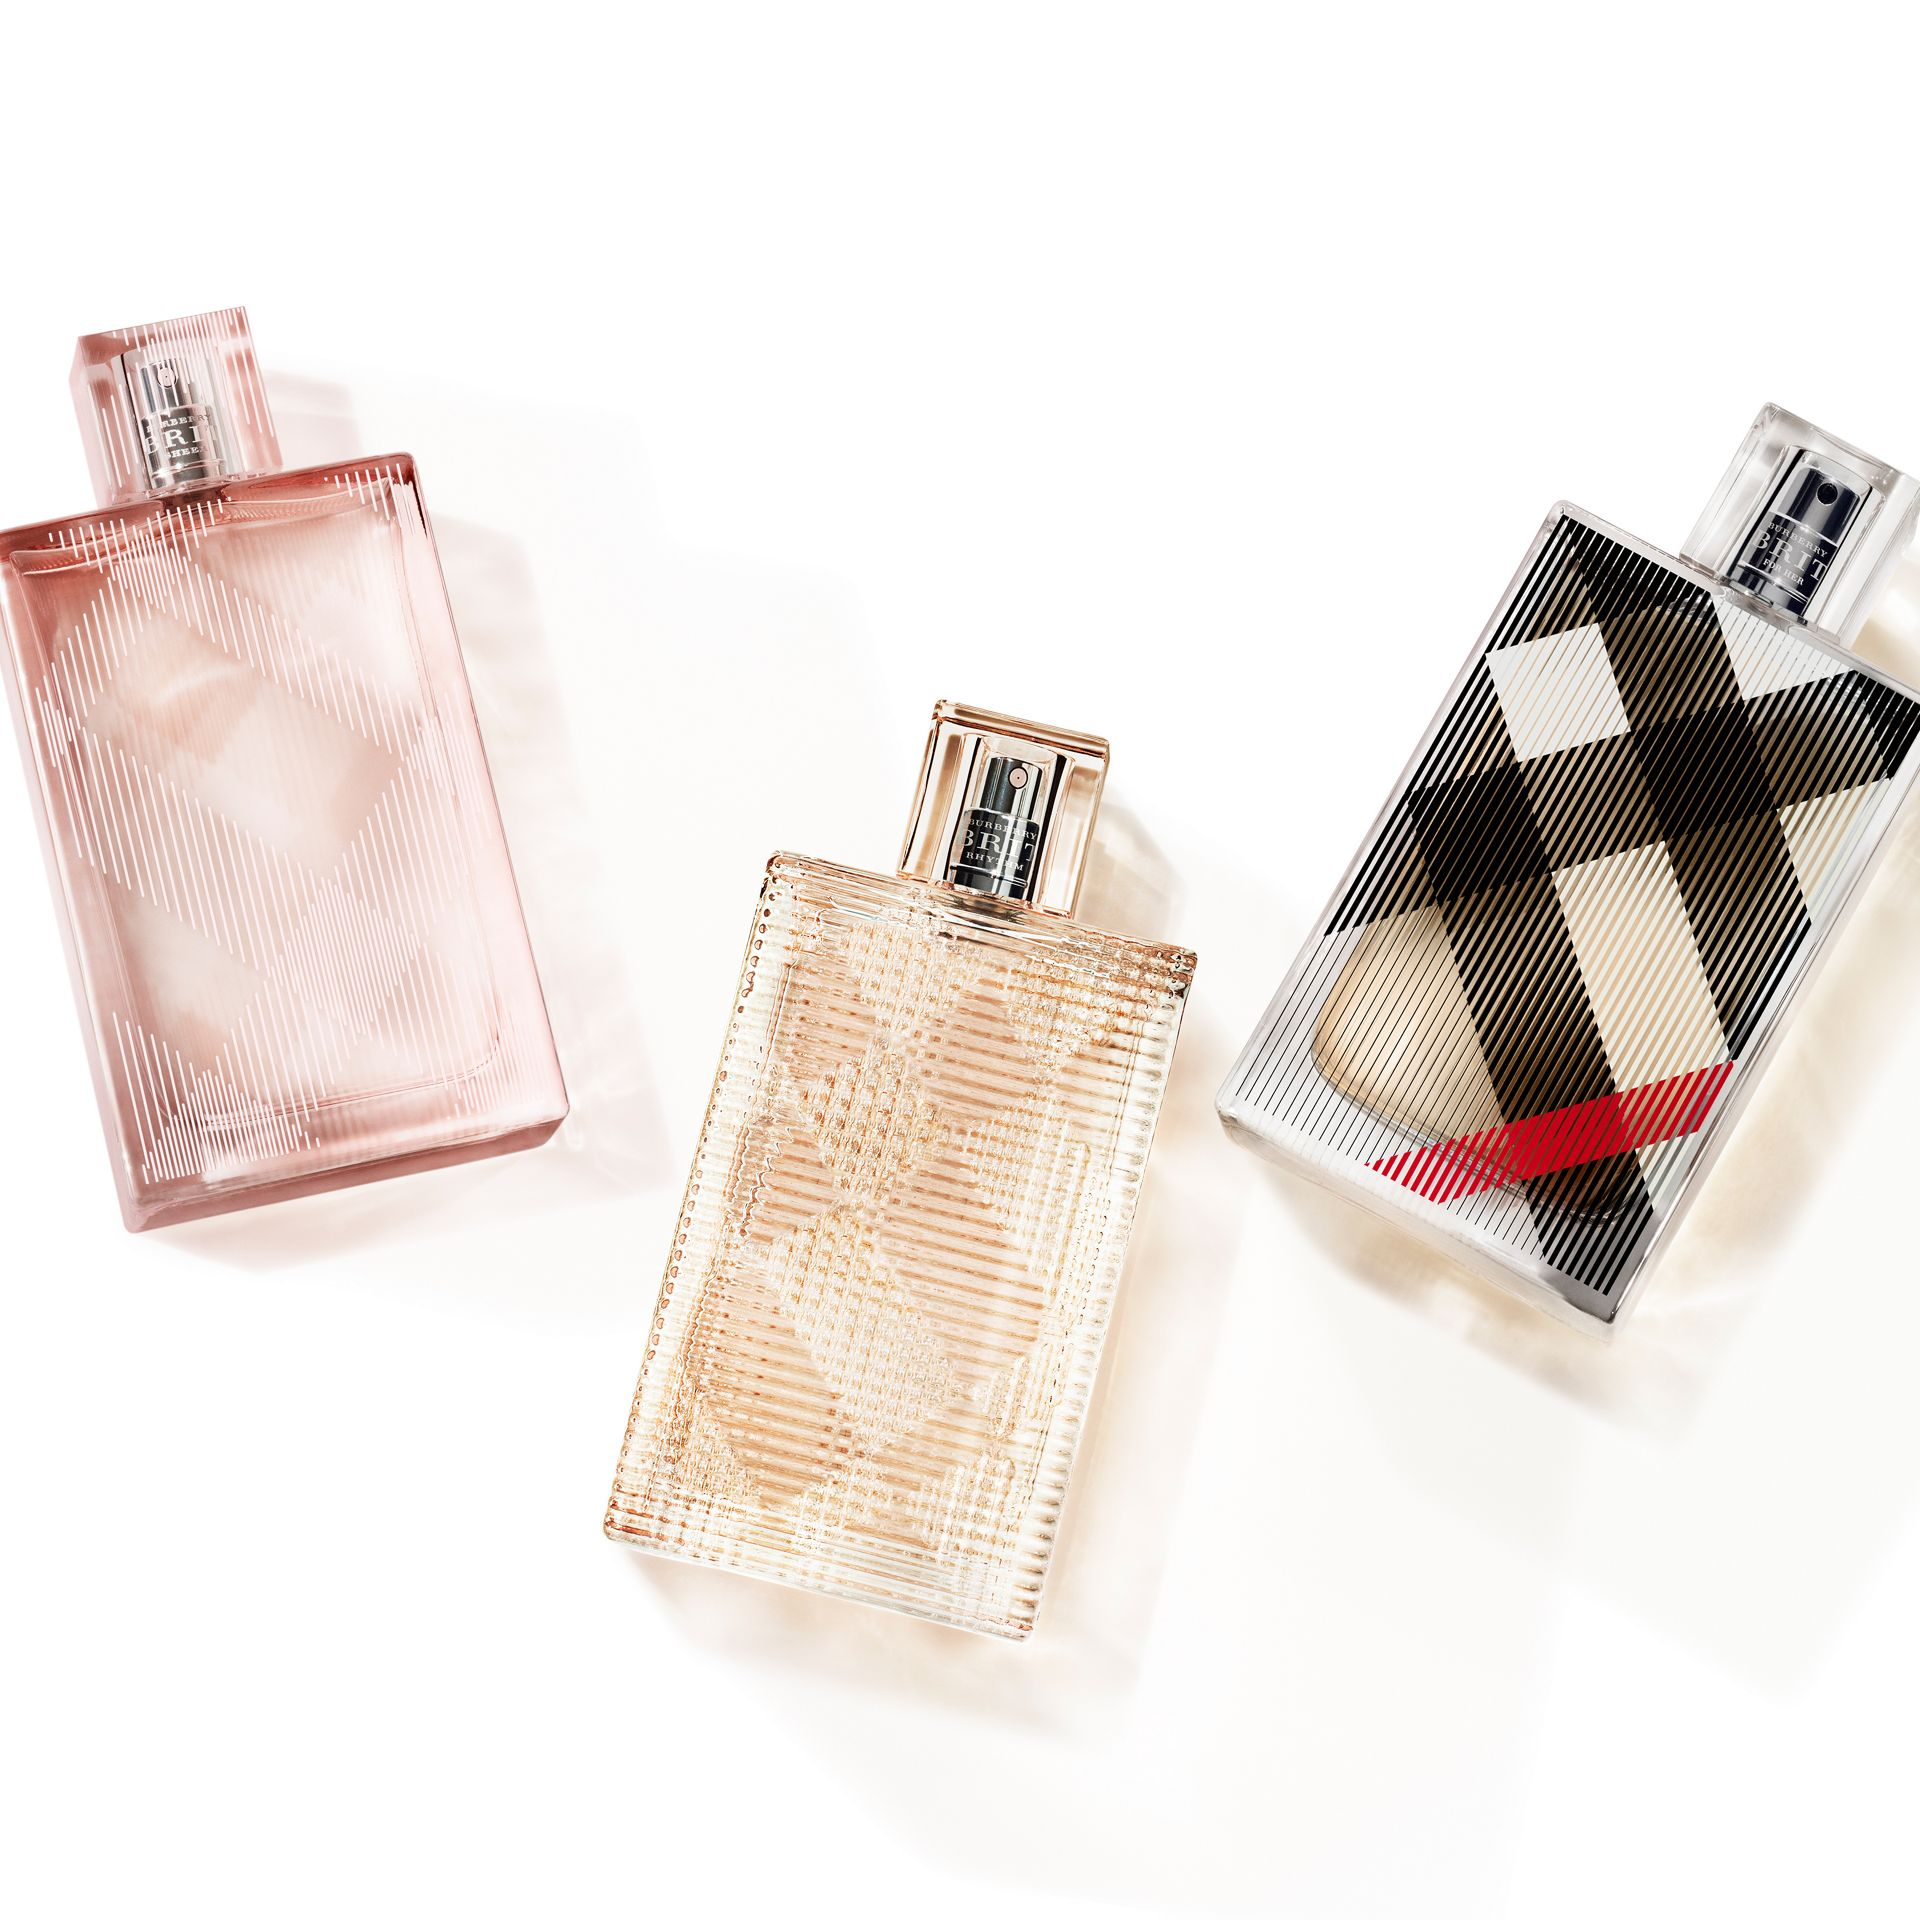 Burberry Brit For Her Eau de Parfum 50ml - Women | Burberry - gallery image 4